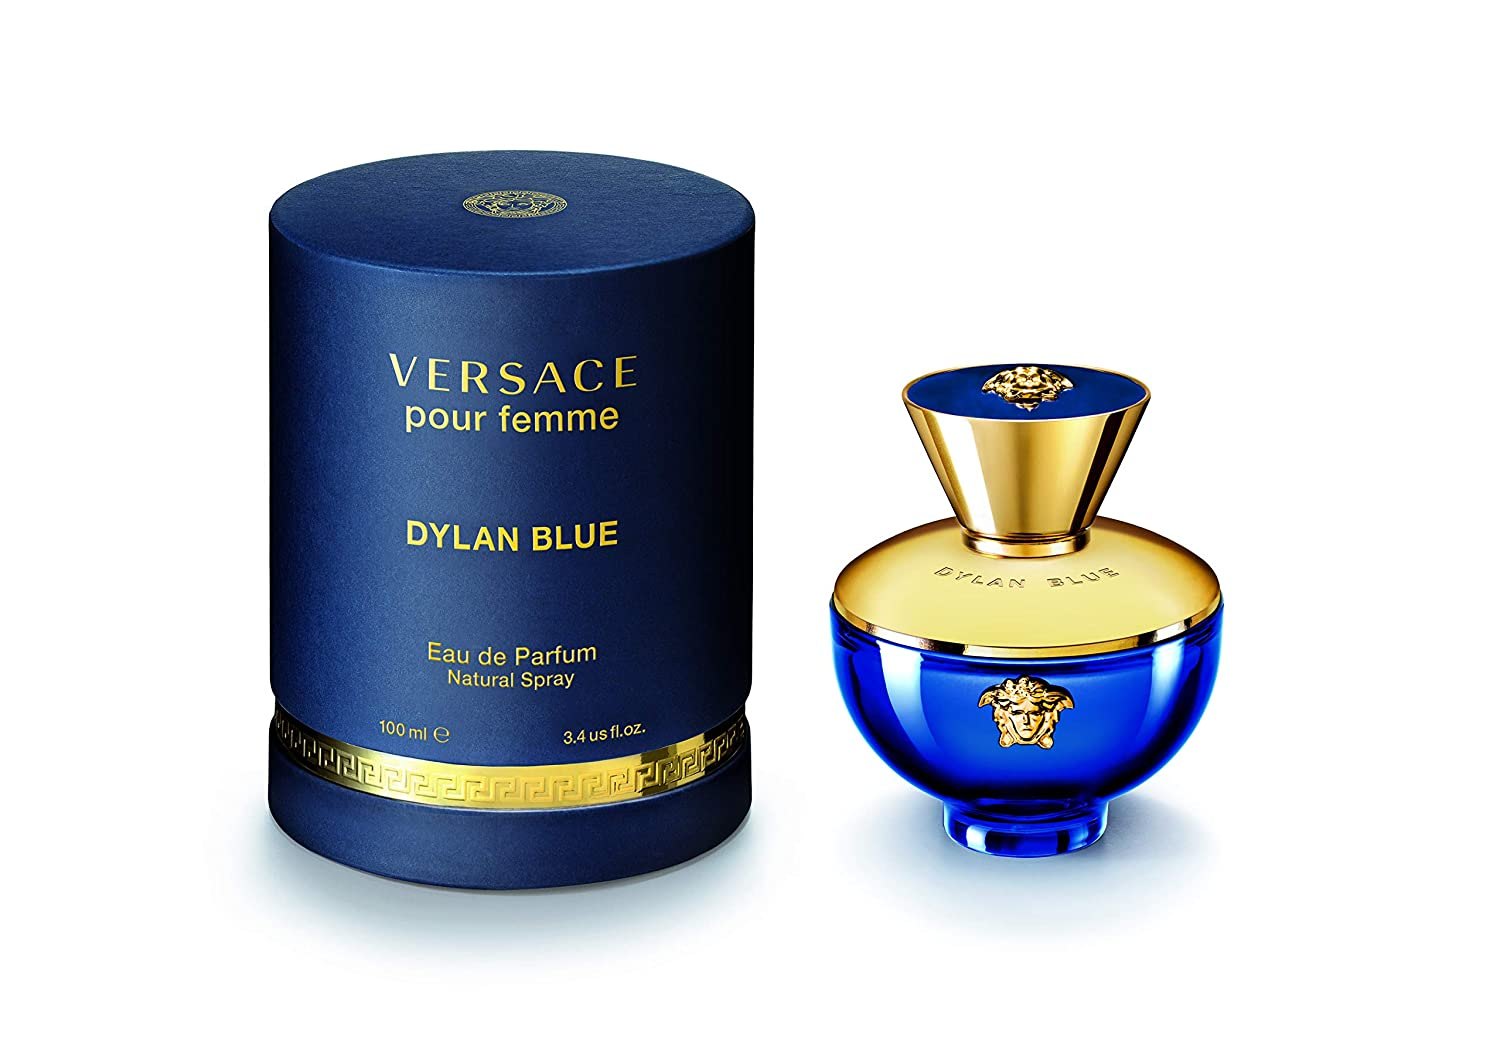 Amazon.com   Versace Dylan Blue Pour Femme Eau de Parfum Spray, 3.4 Fl Oz,  Pack of 1   Beauty 3de6aaa32d